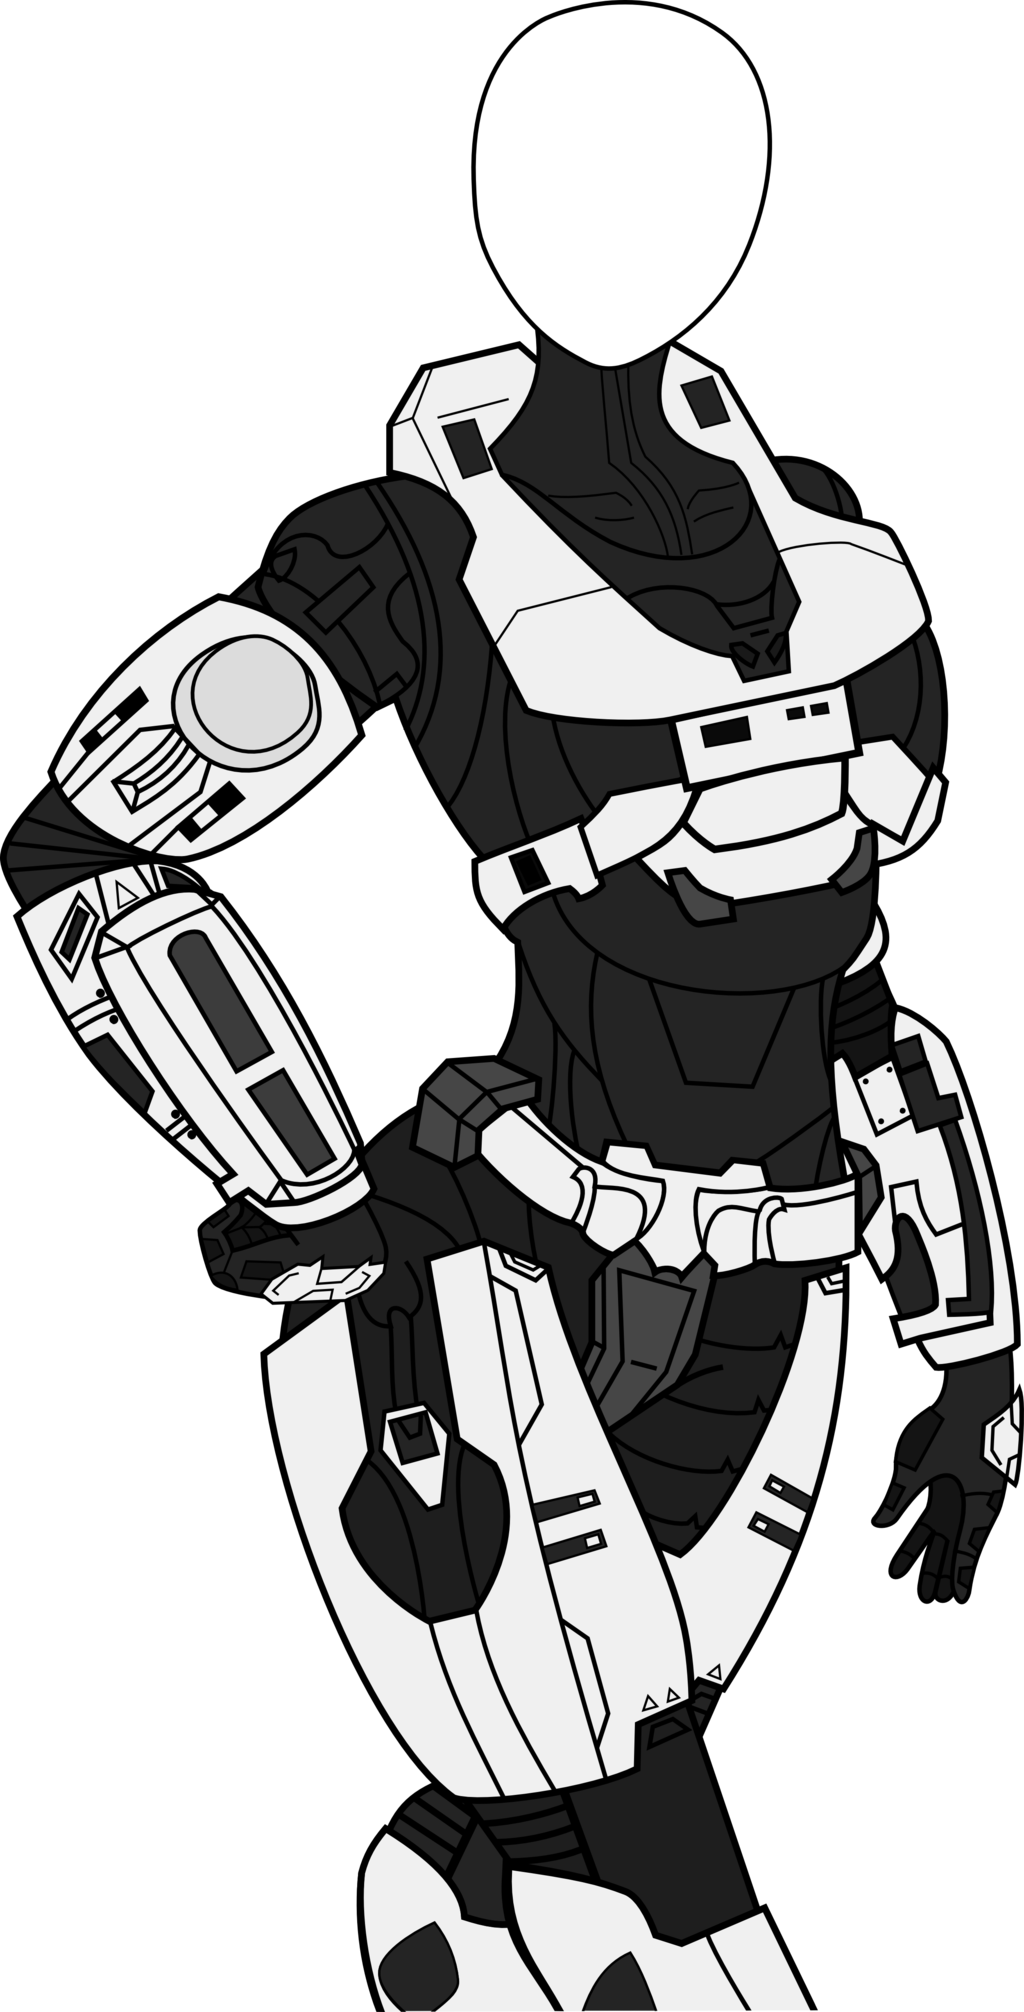 Odst drawing female. Collection of halo